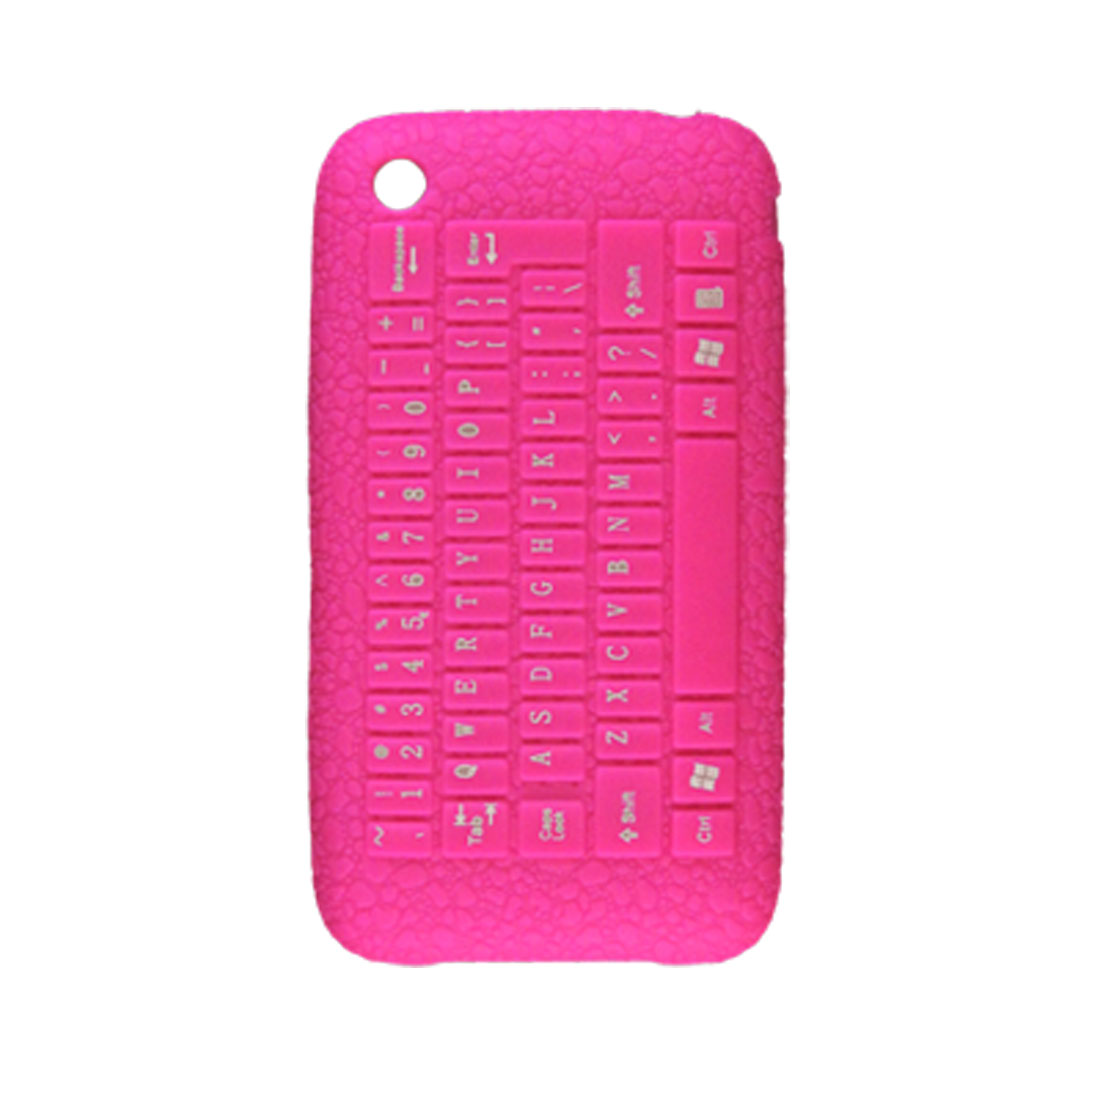 Hot Pink Anti Slip Keyboard Pebble Pattern Soft Plastic Case for iPhone 3G 3GS